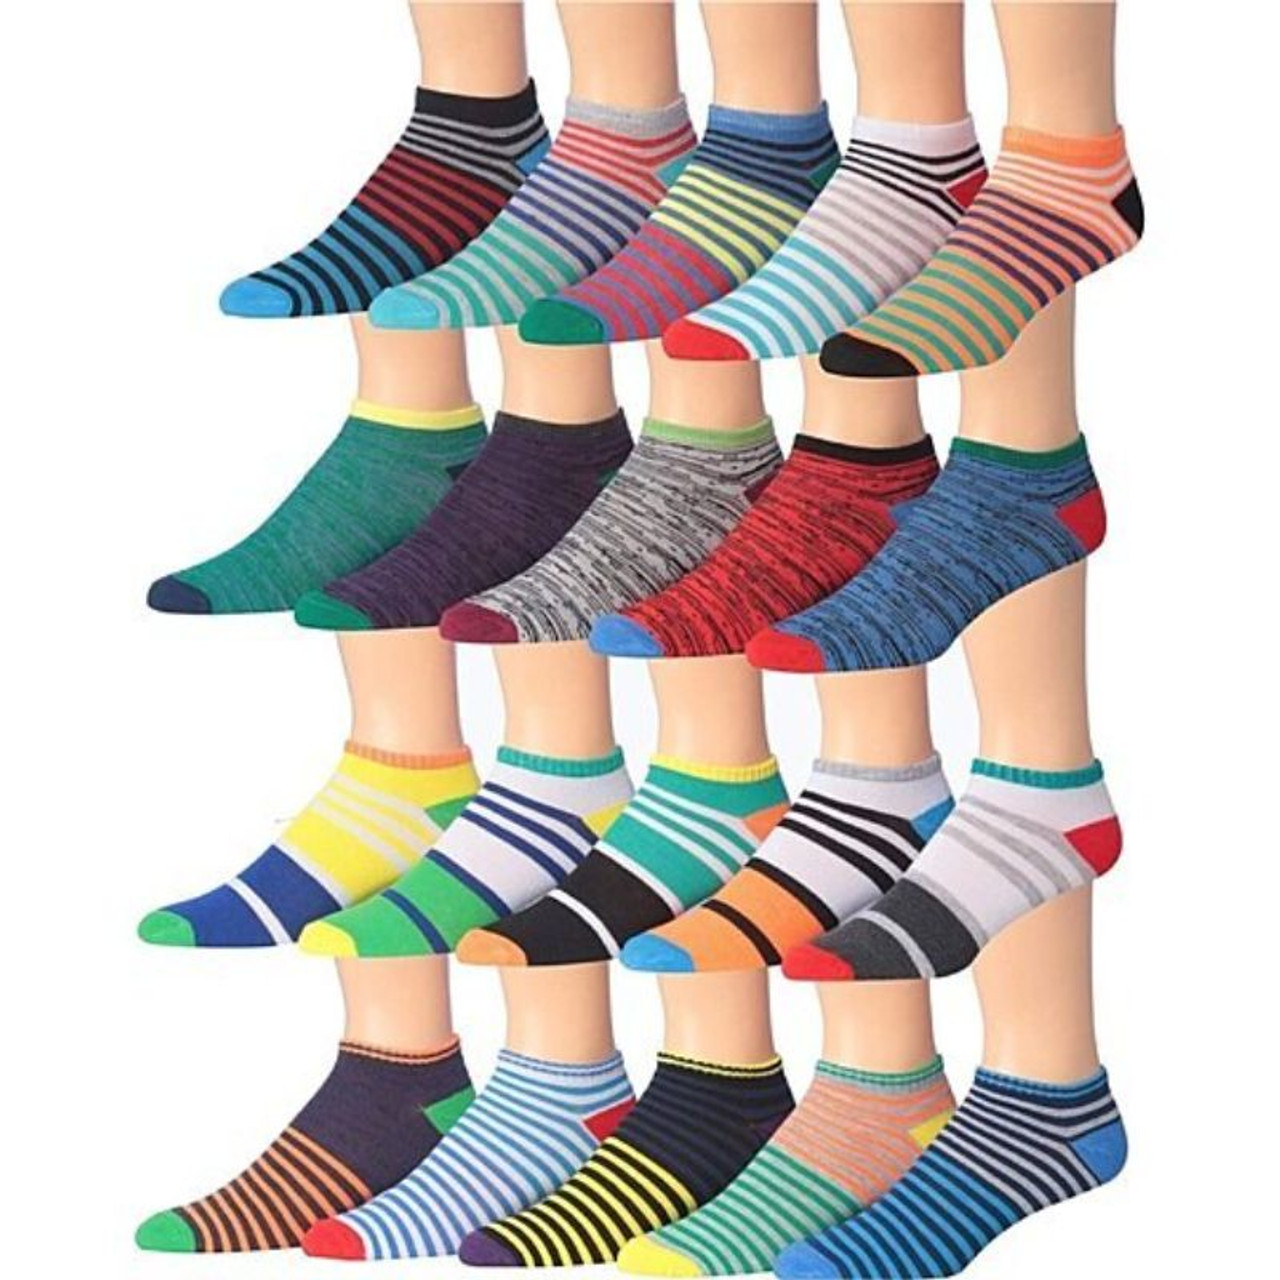 Men's James Fiallo Assorted Performance Low Cut Athletic Sport Socks - 30 Pairs